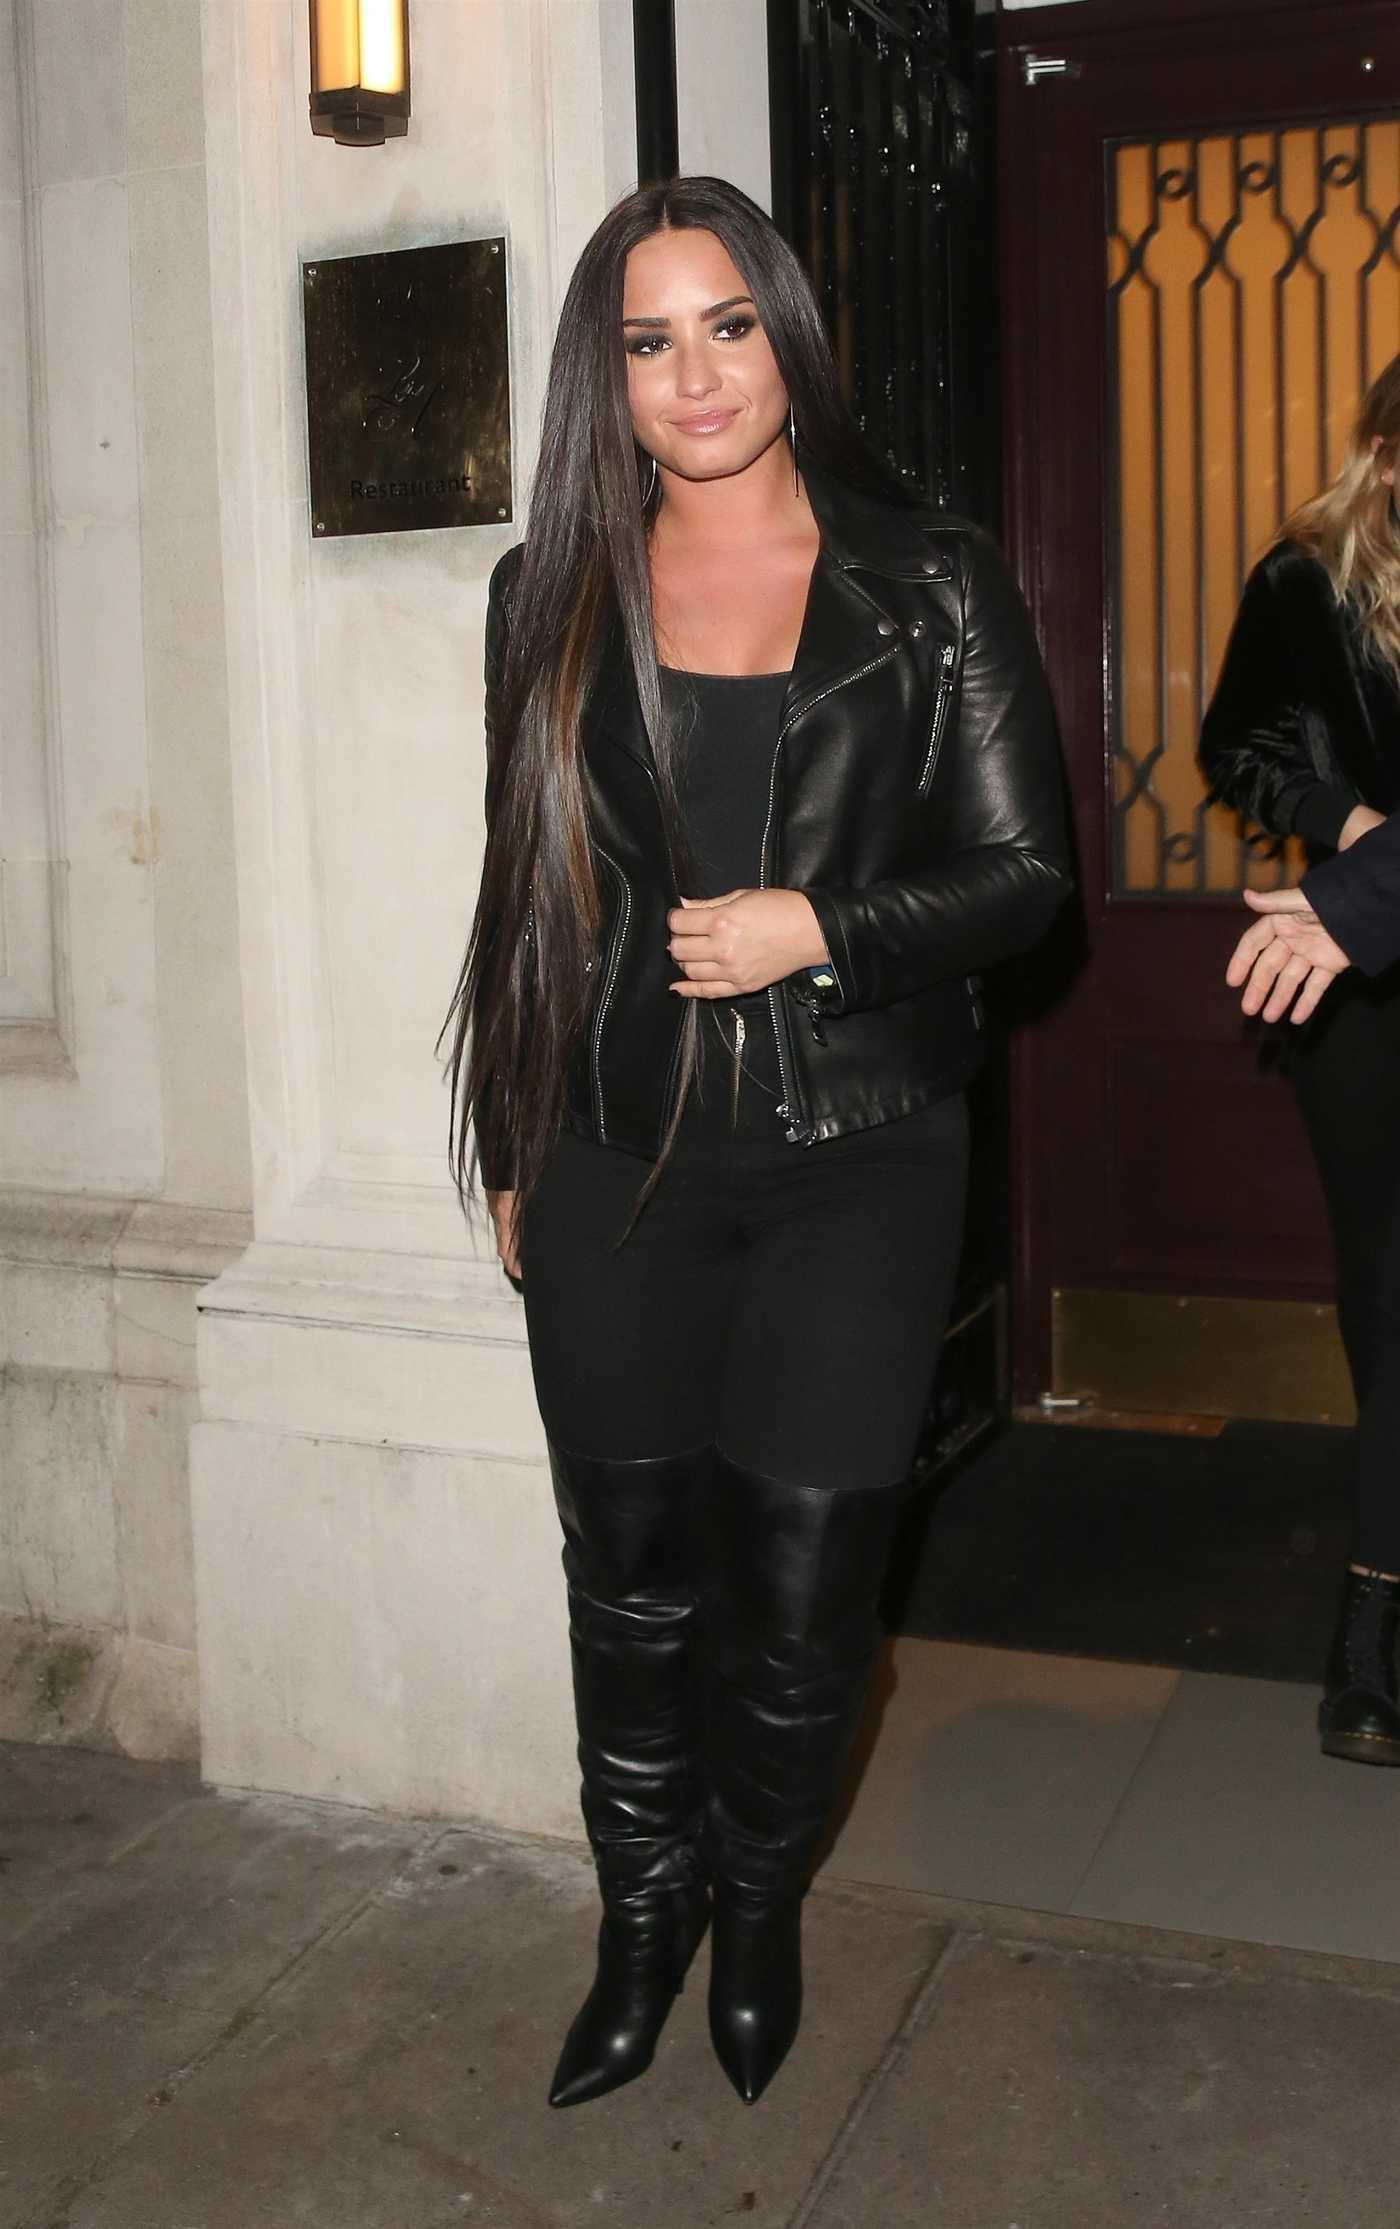 Demi Lovato Leaves the Les Ambassadeurs Club in London 11/14/2017